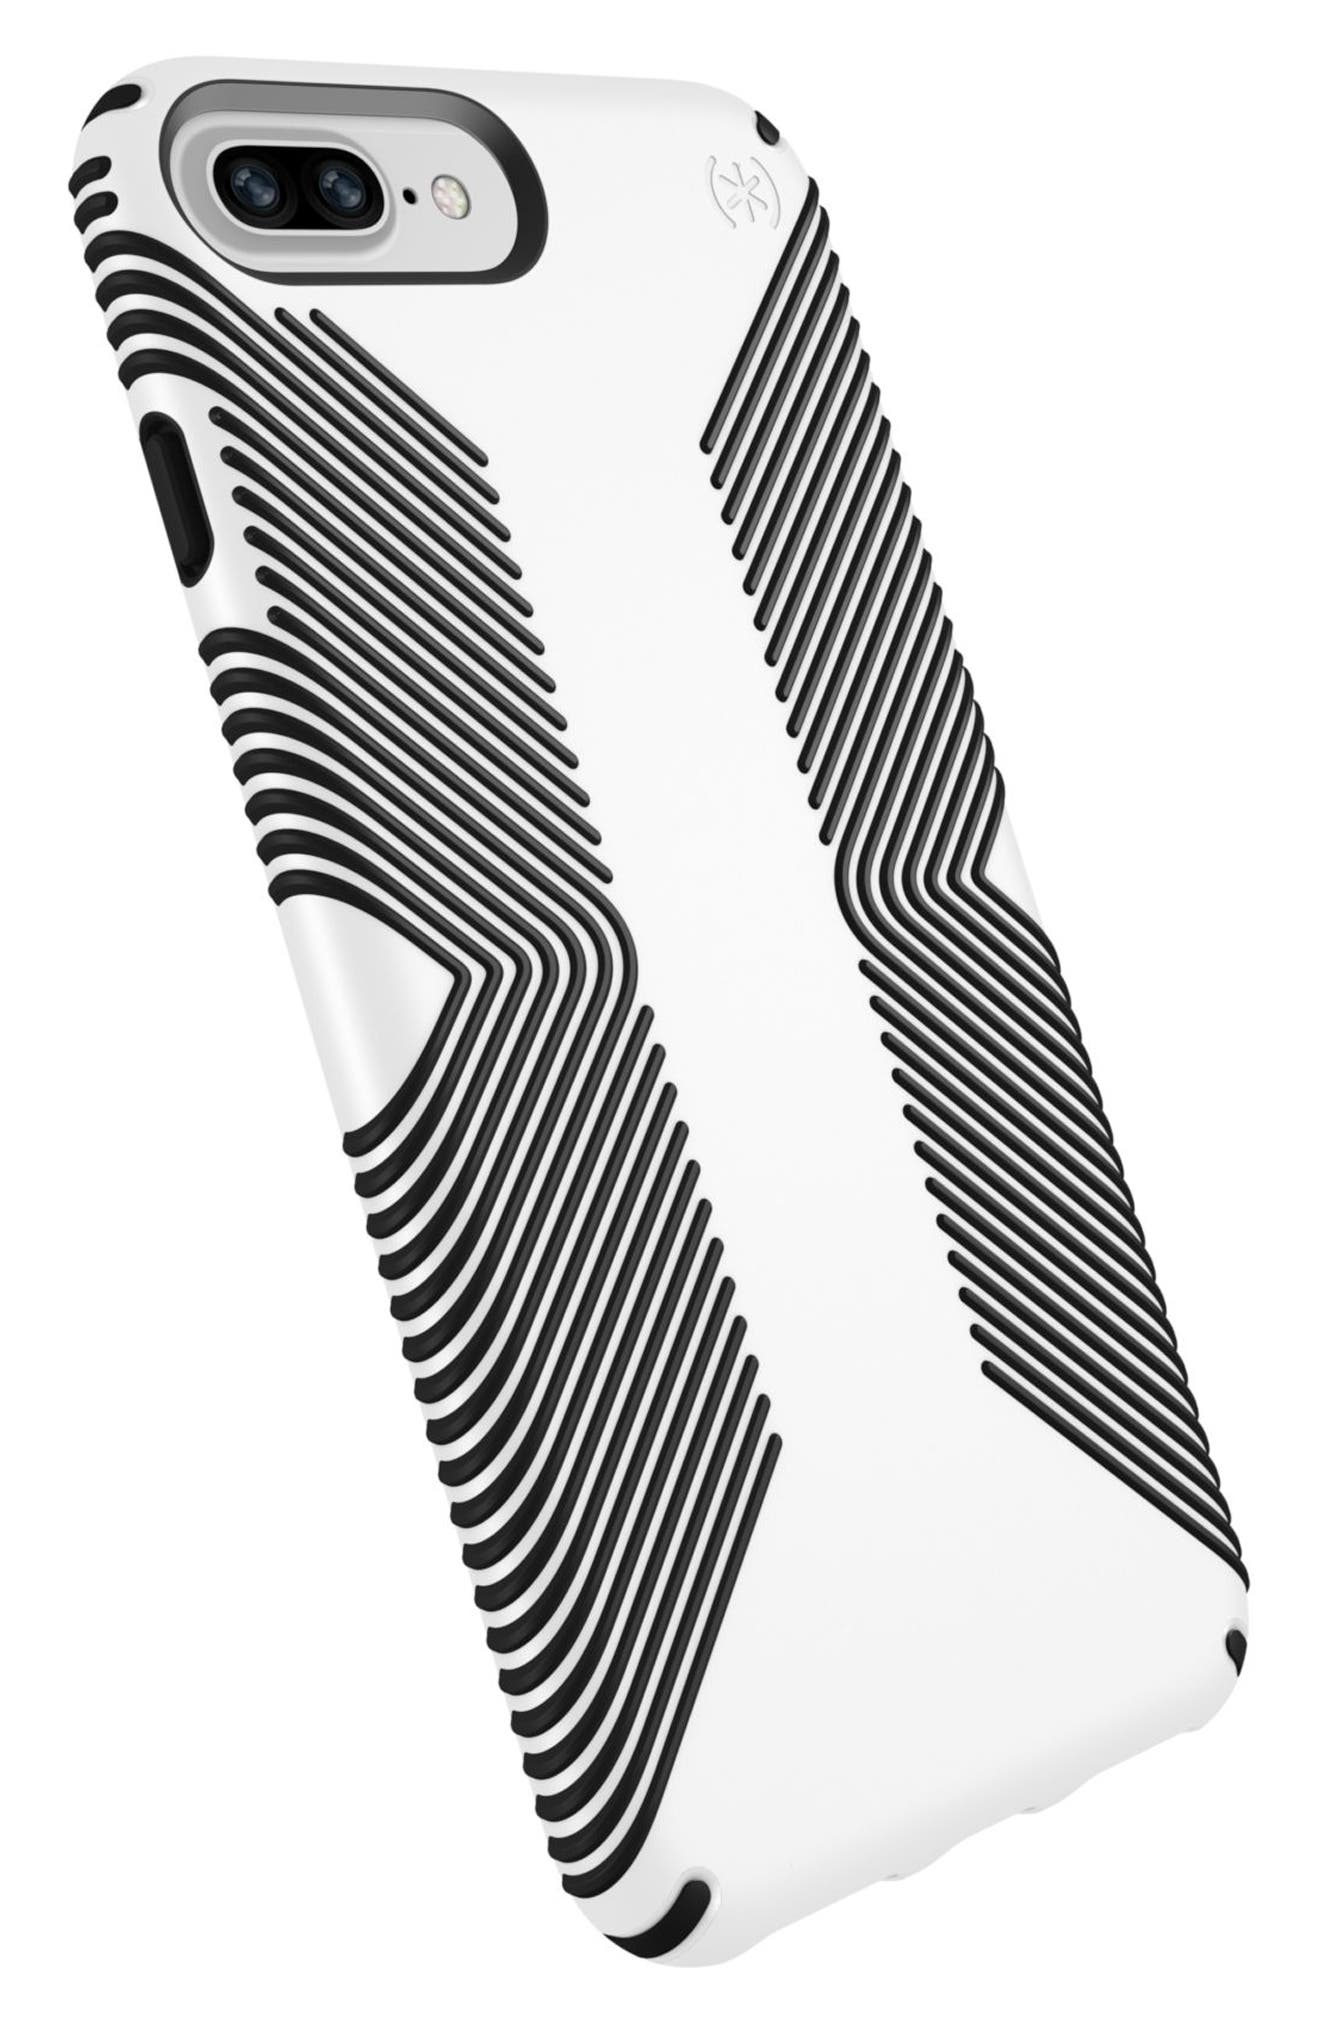 Grip iPhone 6/6s/7/8 Plus Case,                             Alternate thumbnail 5, color,                             White/ Black